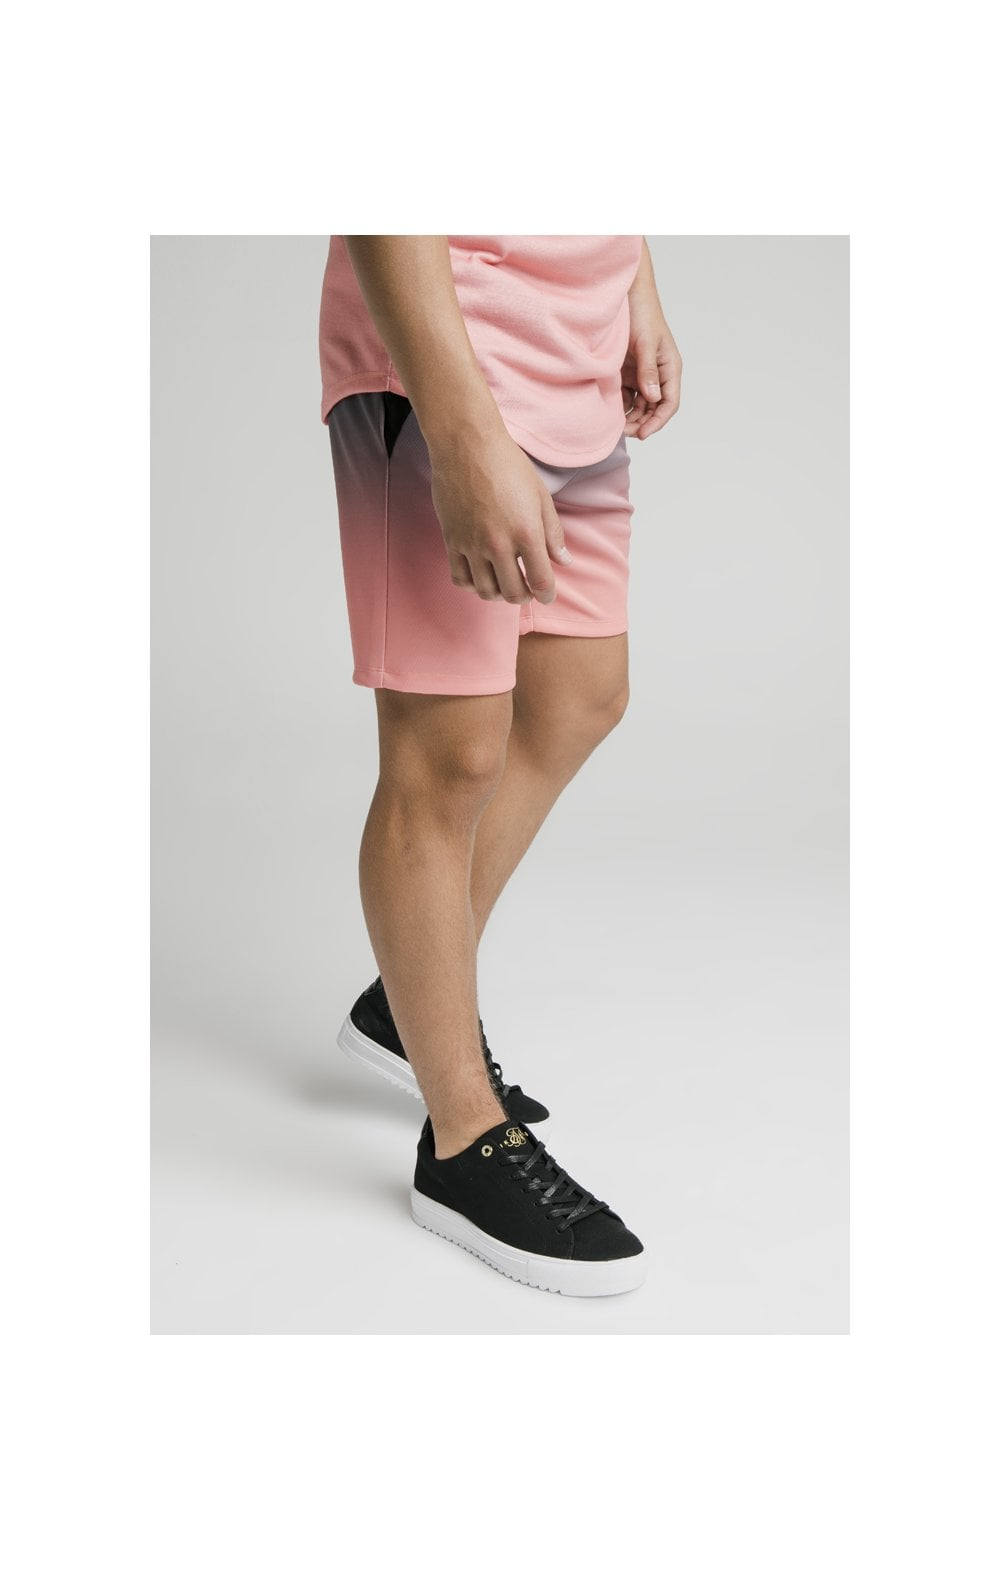 Load image into Gallery viewer, Illusive London Poly Fade Shorts - Grey & Peach (2)